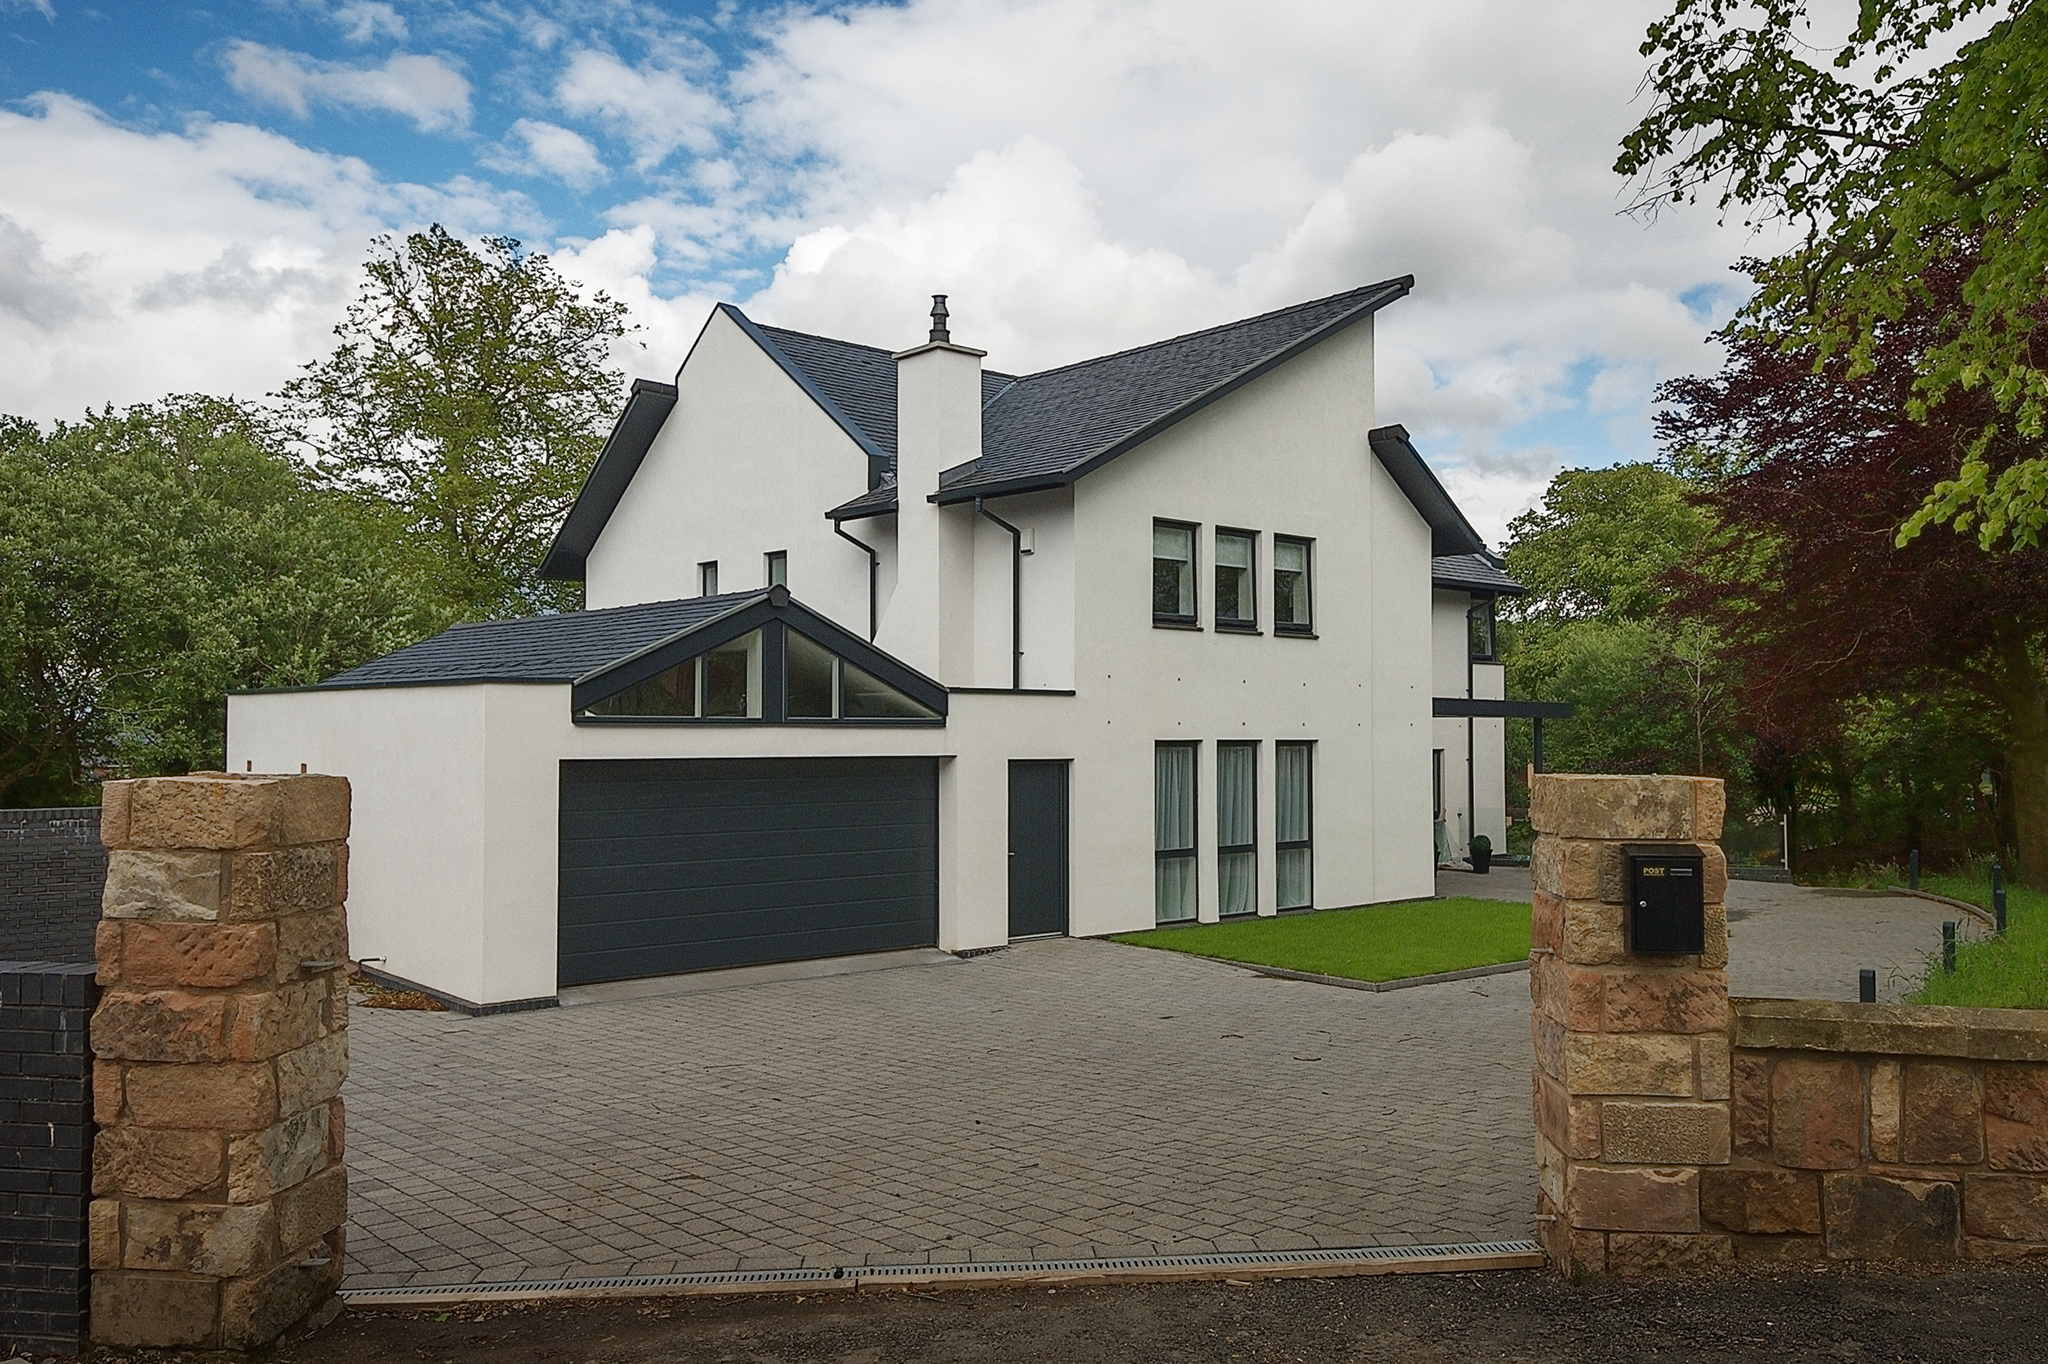 new house burnside, new glasgow, modern house glasgow, architect in glasgow, glasgow architect, architect in paisley, paisley architect, planning permission glasgow, planning permission paisley